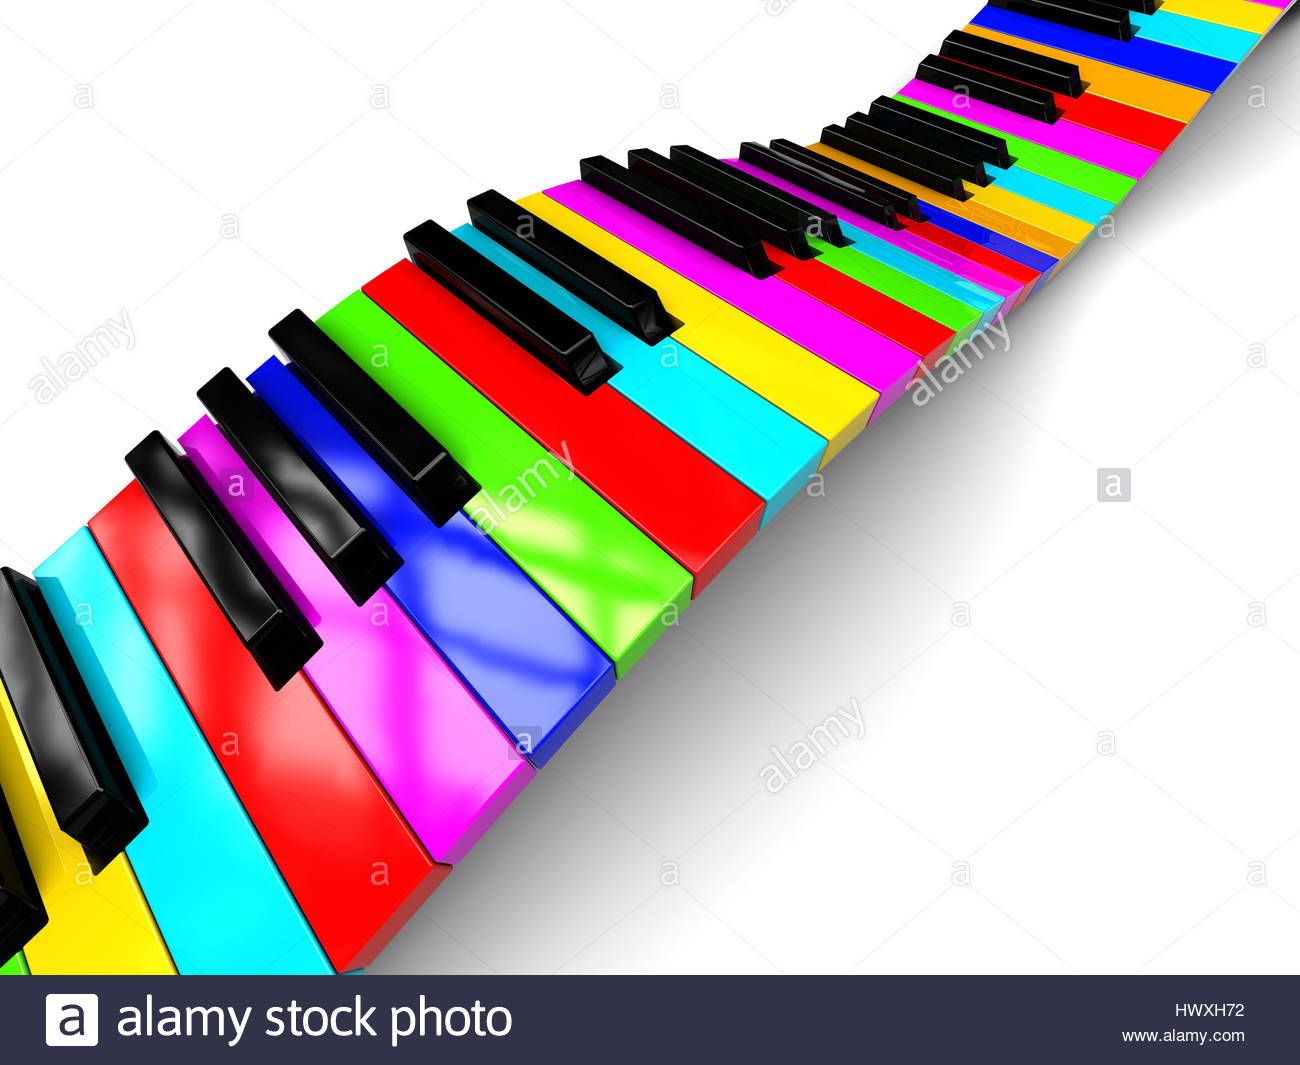 1300x1065 Abstract 3d Illustration Of Colorful Piano Keyboard Over White